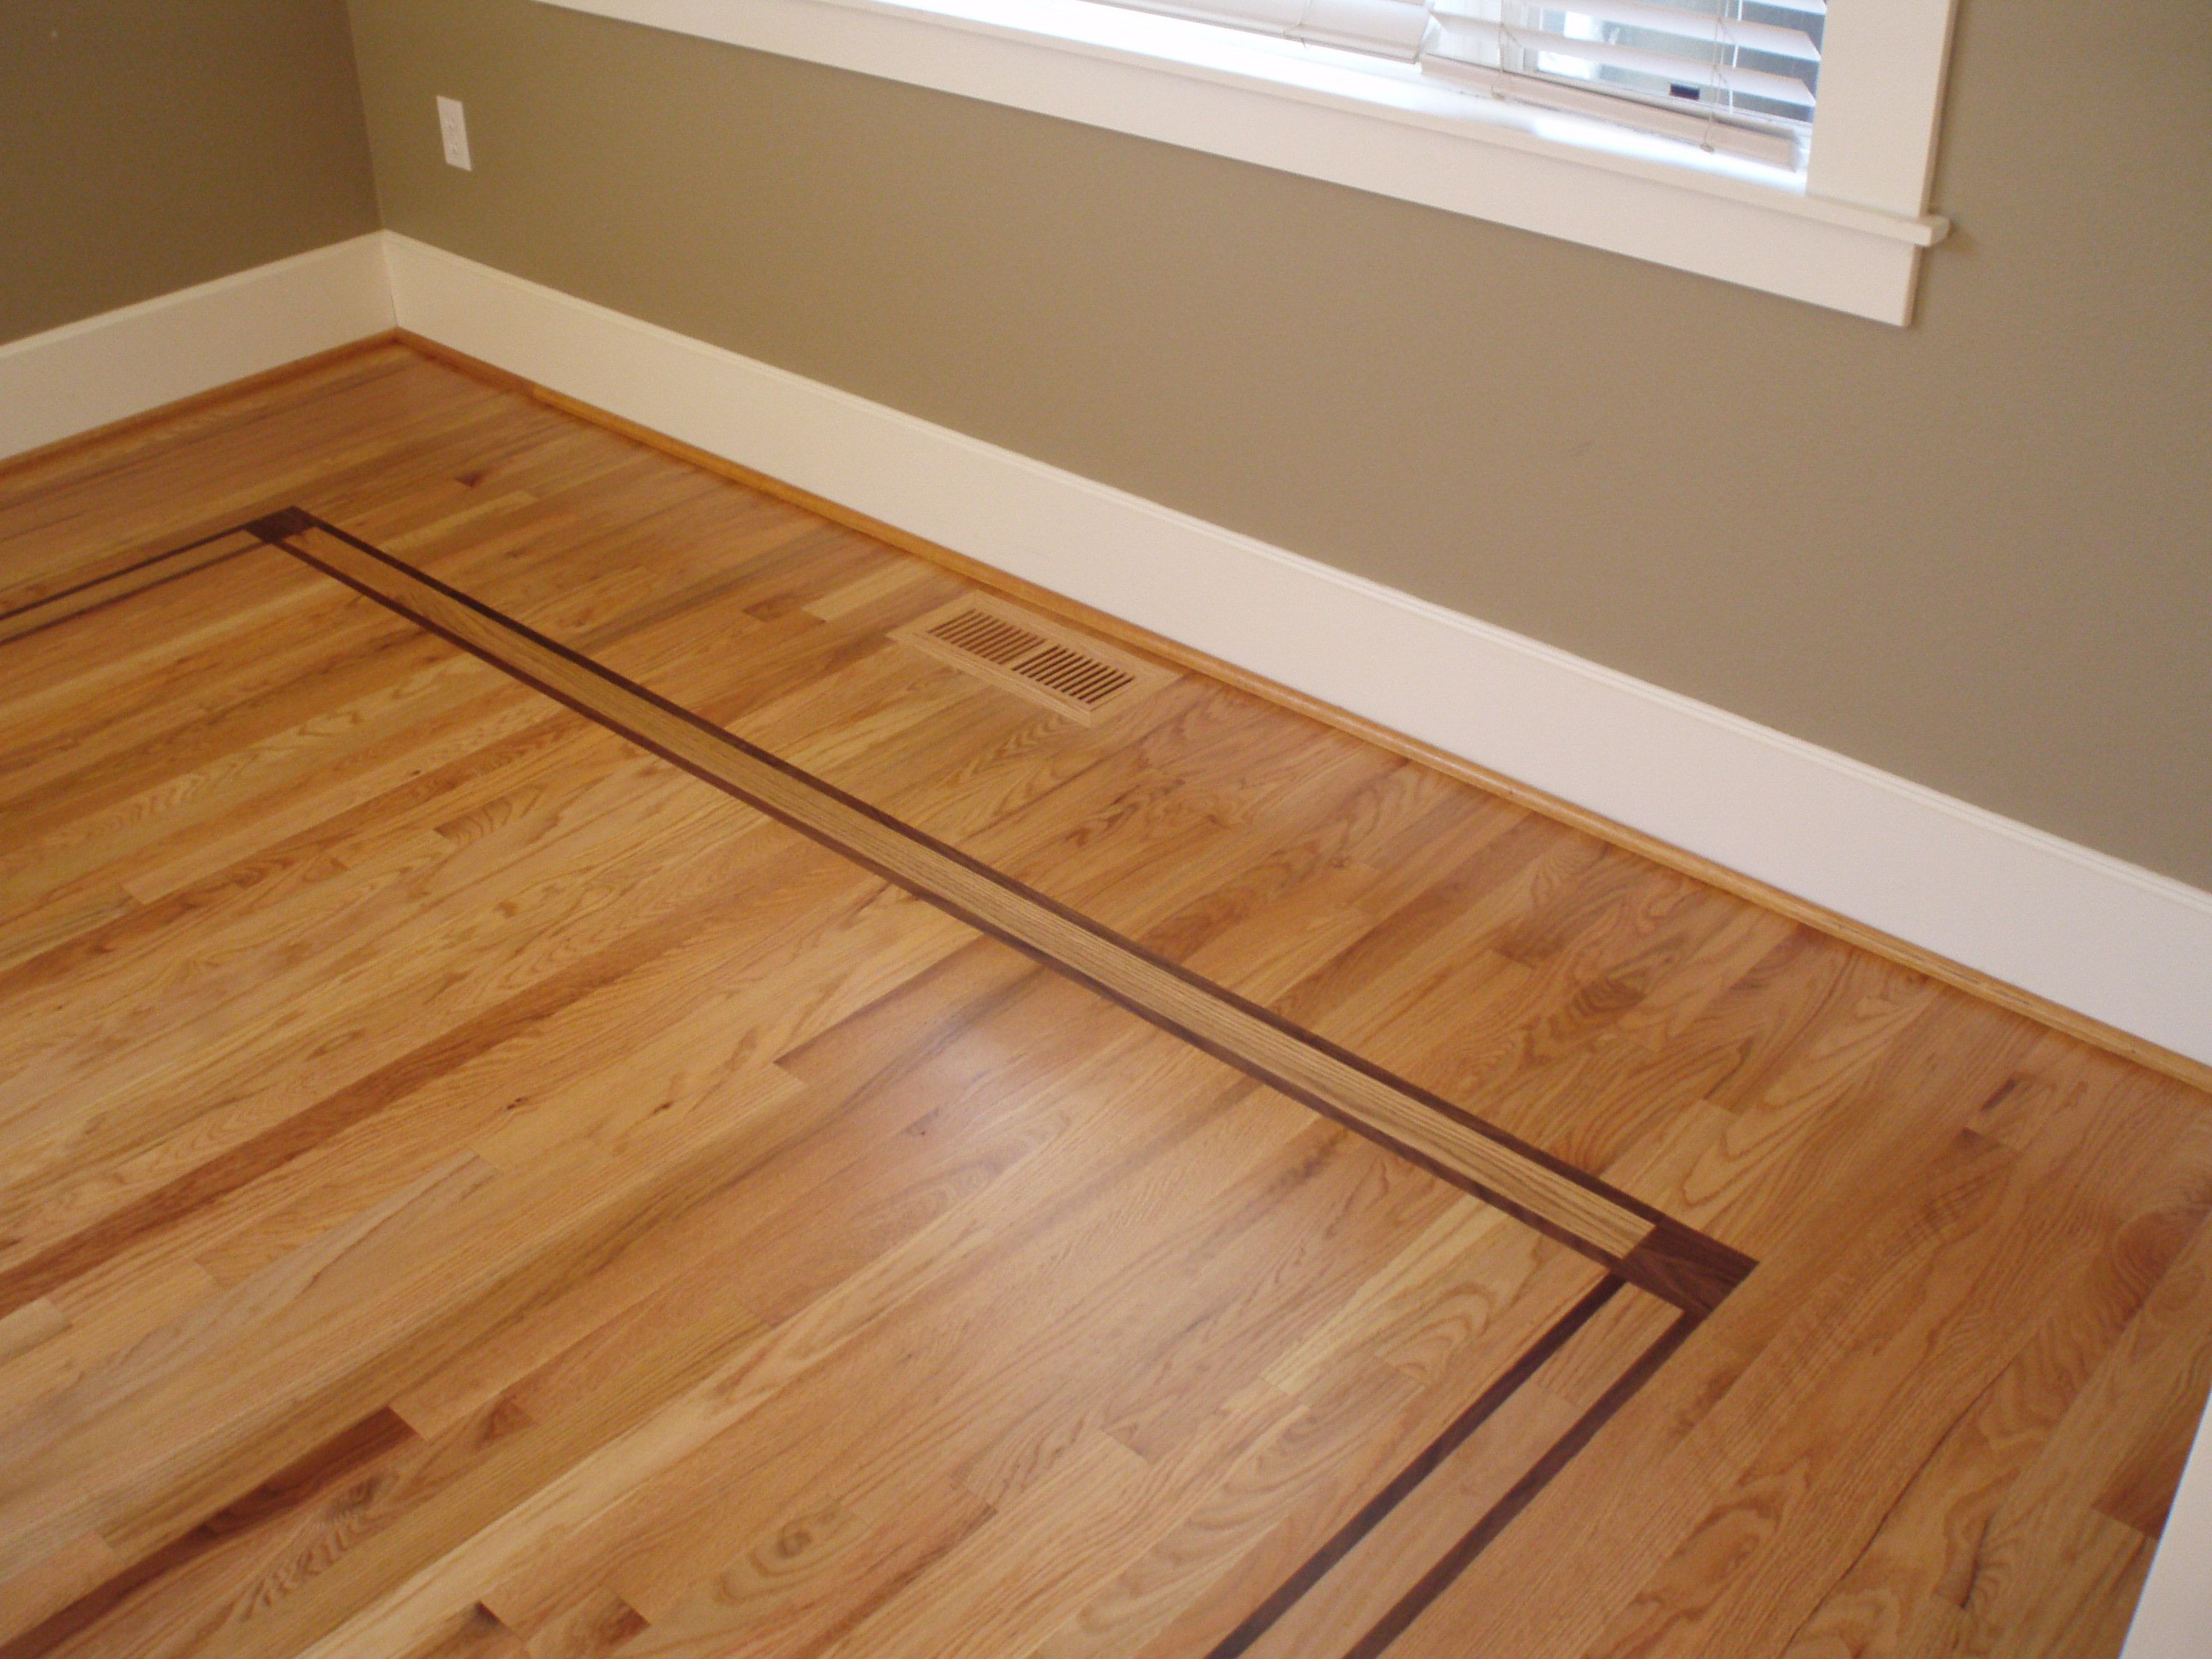 oak hardwood flooring cost of inlay of walnut with red oak flooring www dominohardwoodfloors com pertaining to inlay of walnut with red oak flooring www dominohardwoodfloors com portland or domino hardwood floors inc